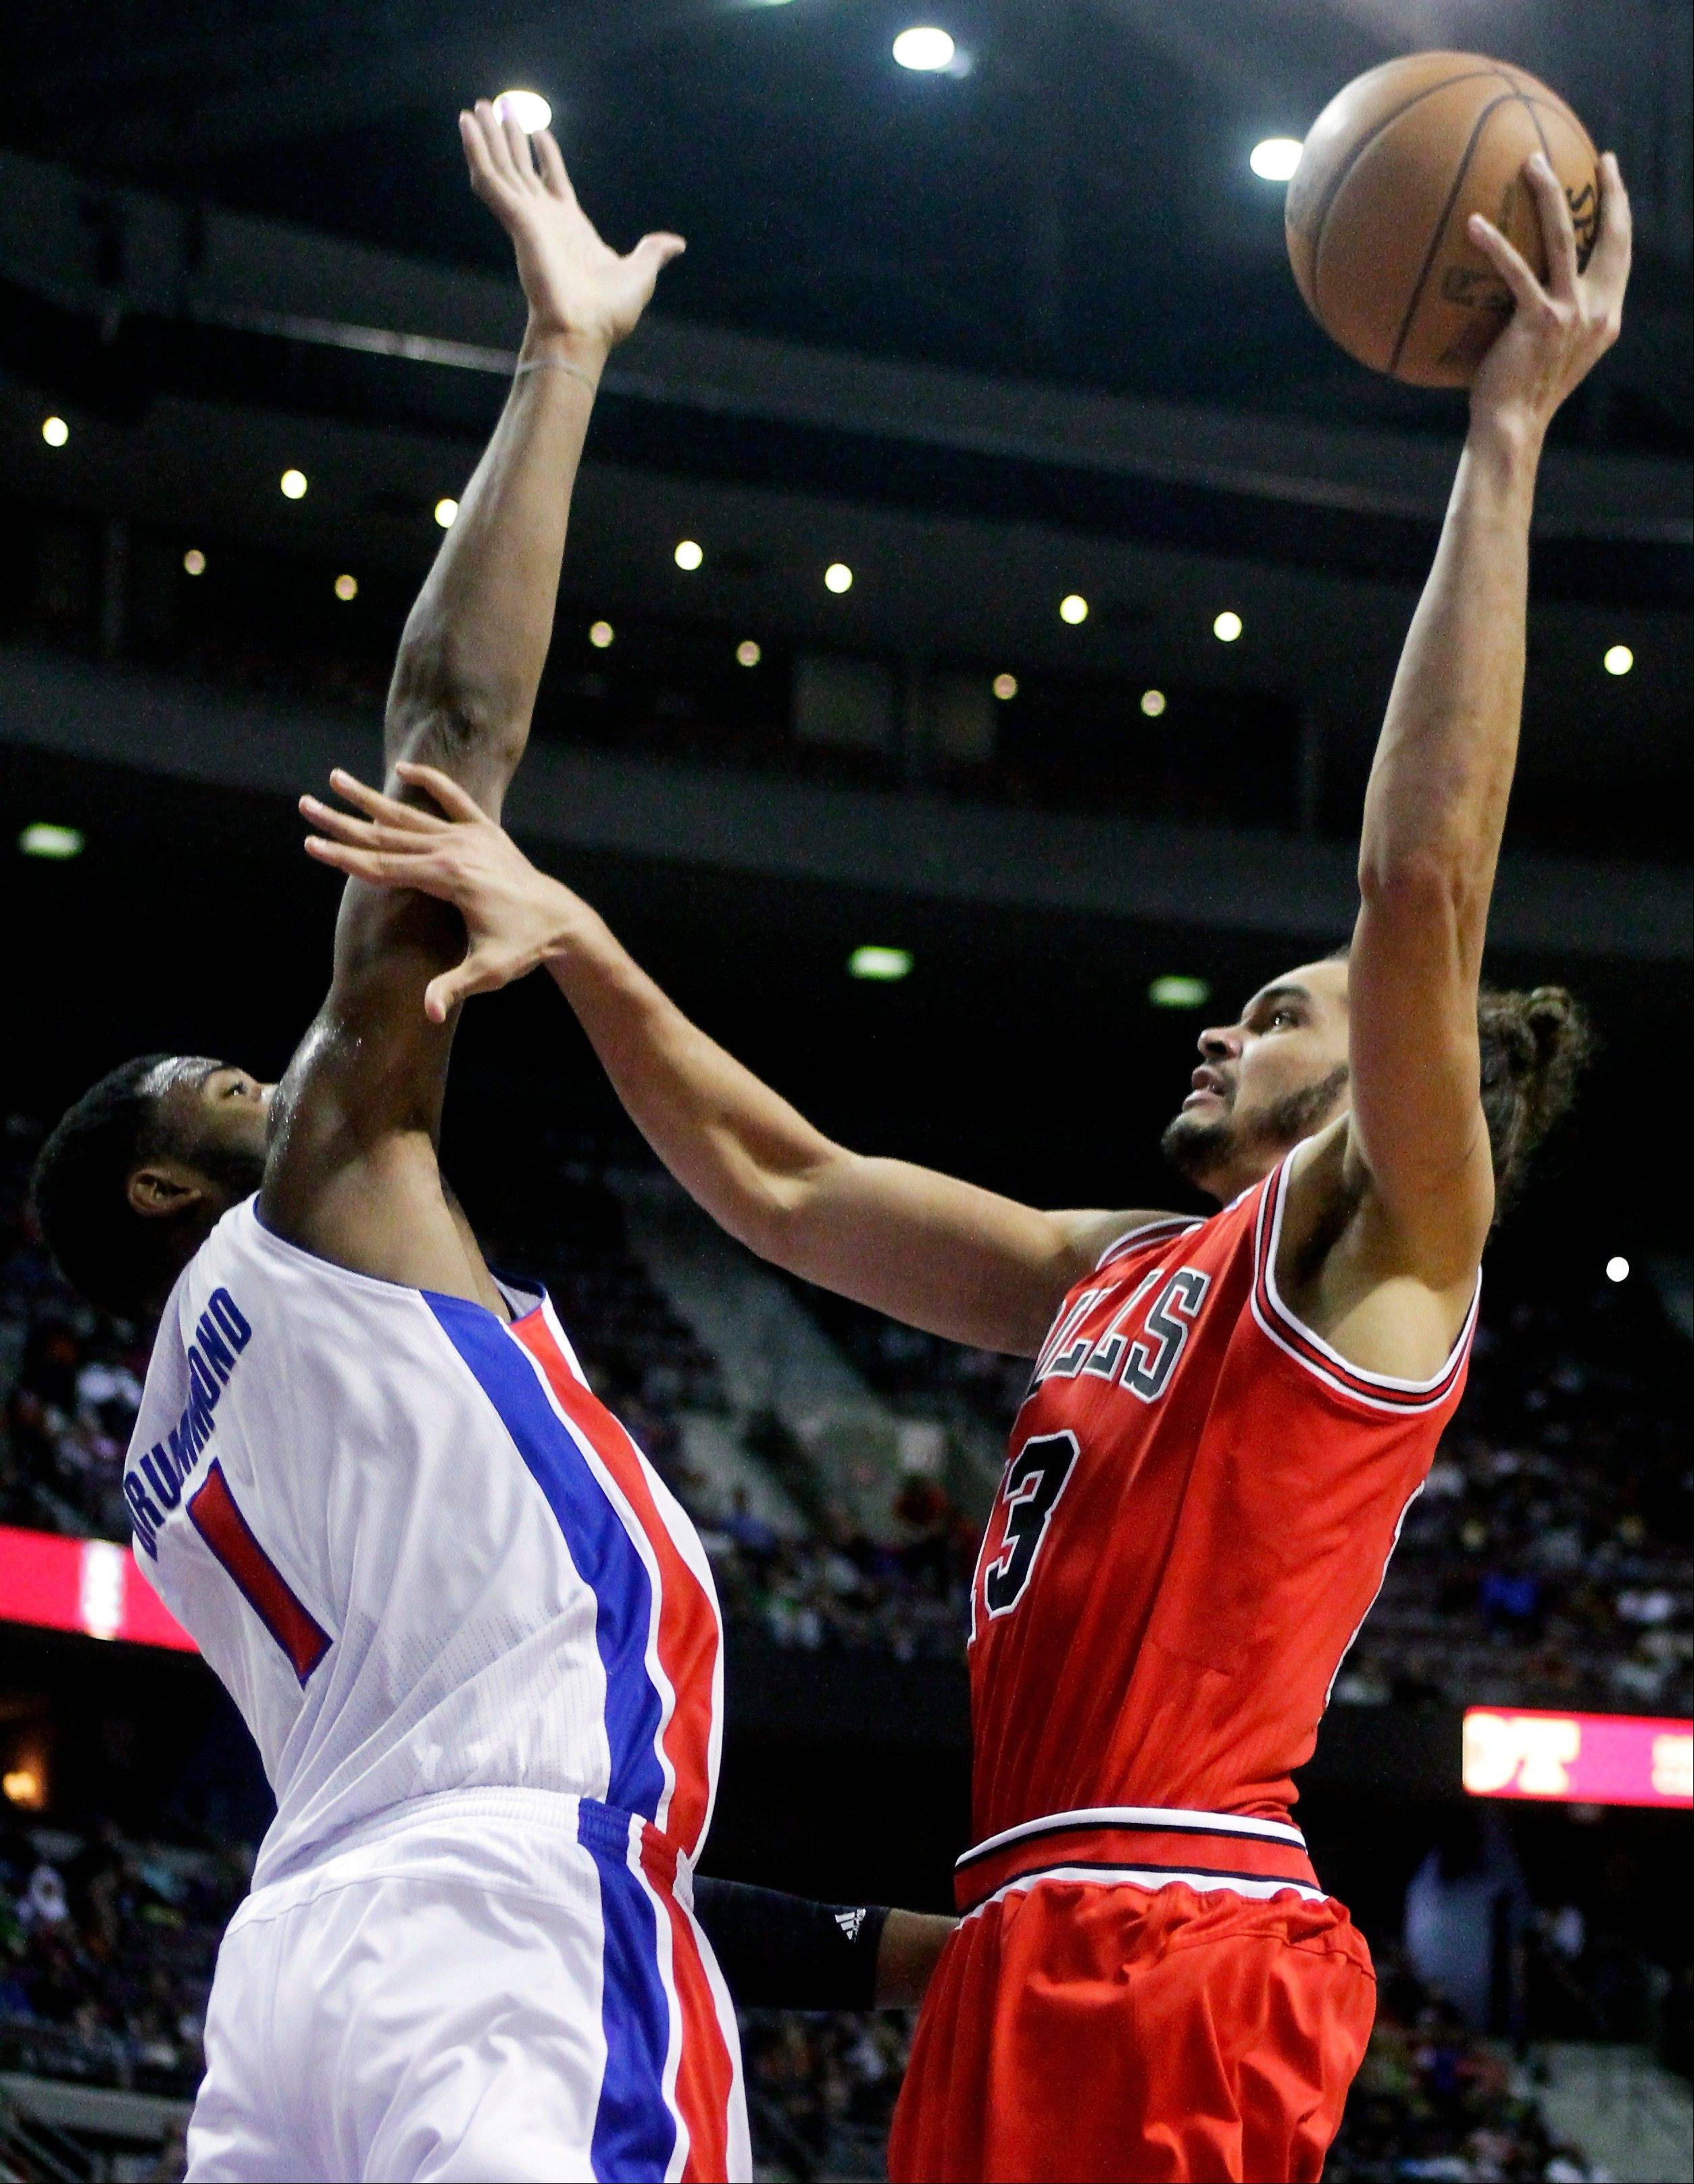 Bulls center Joakim Noah goes to the basket against Detroit Pistons forward Andre Drummond Friday during the first half of an in Auburn Hills, Mich.